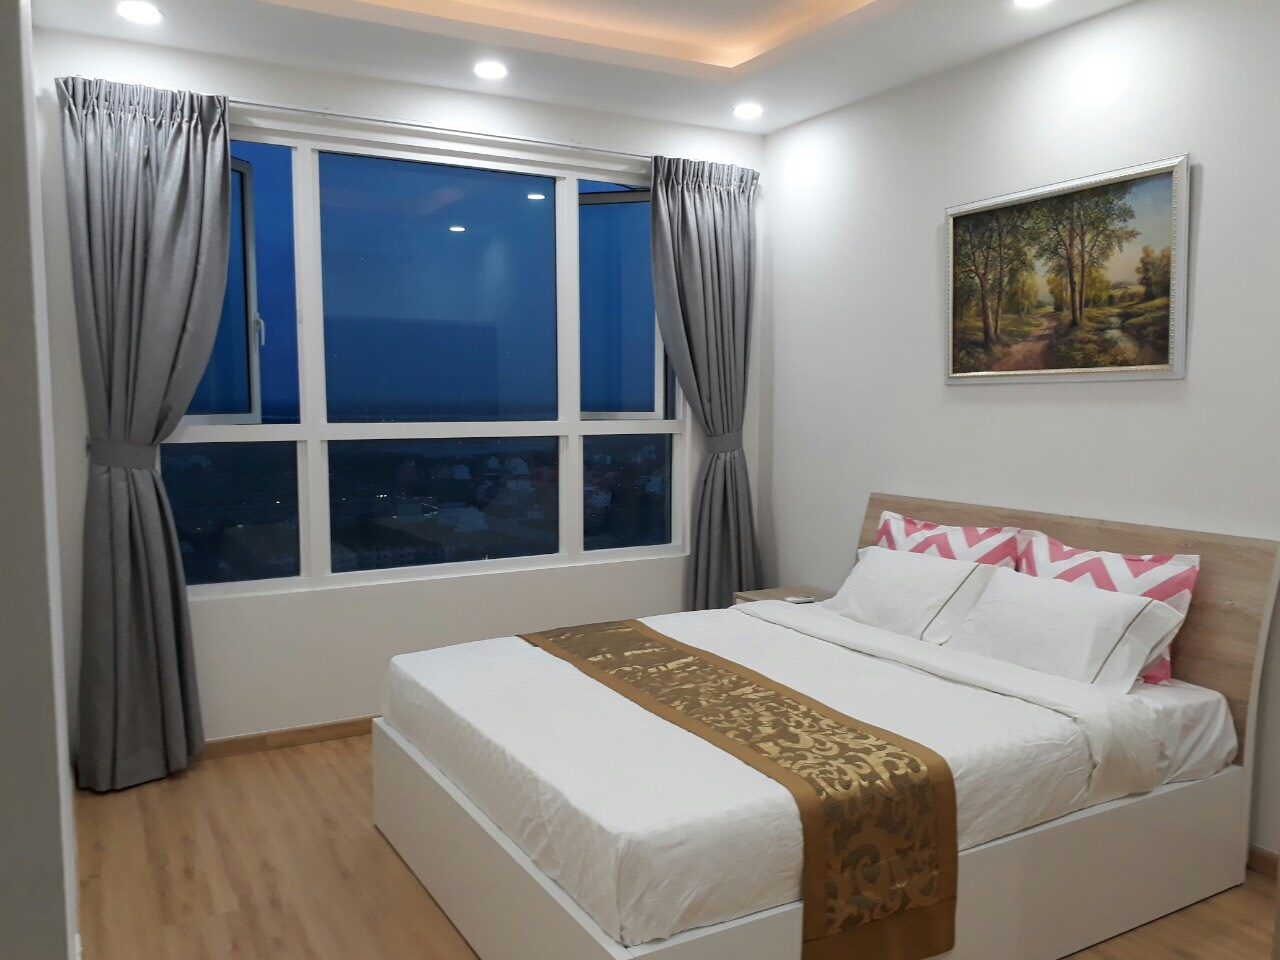 apartment for rent in district 2 hcmc vista verde apartment for rent in district 2 hcmc D221415 (2)